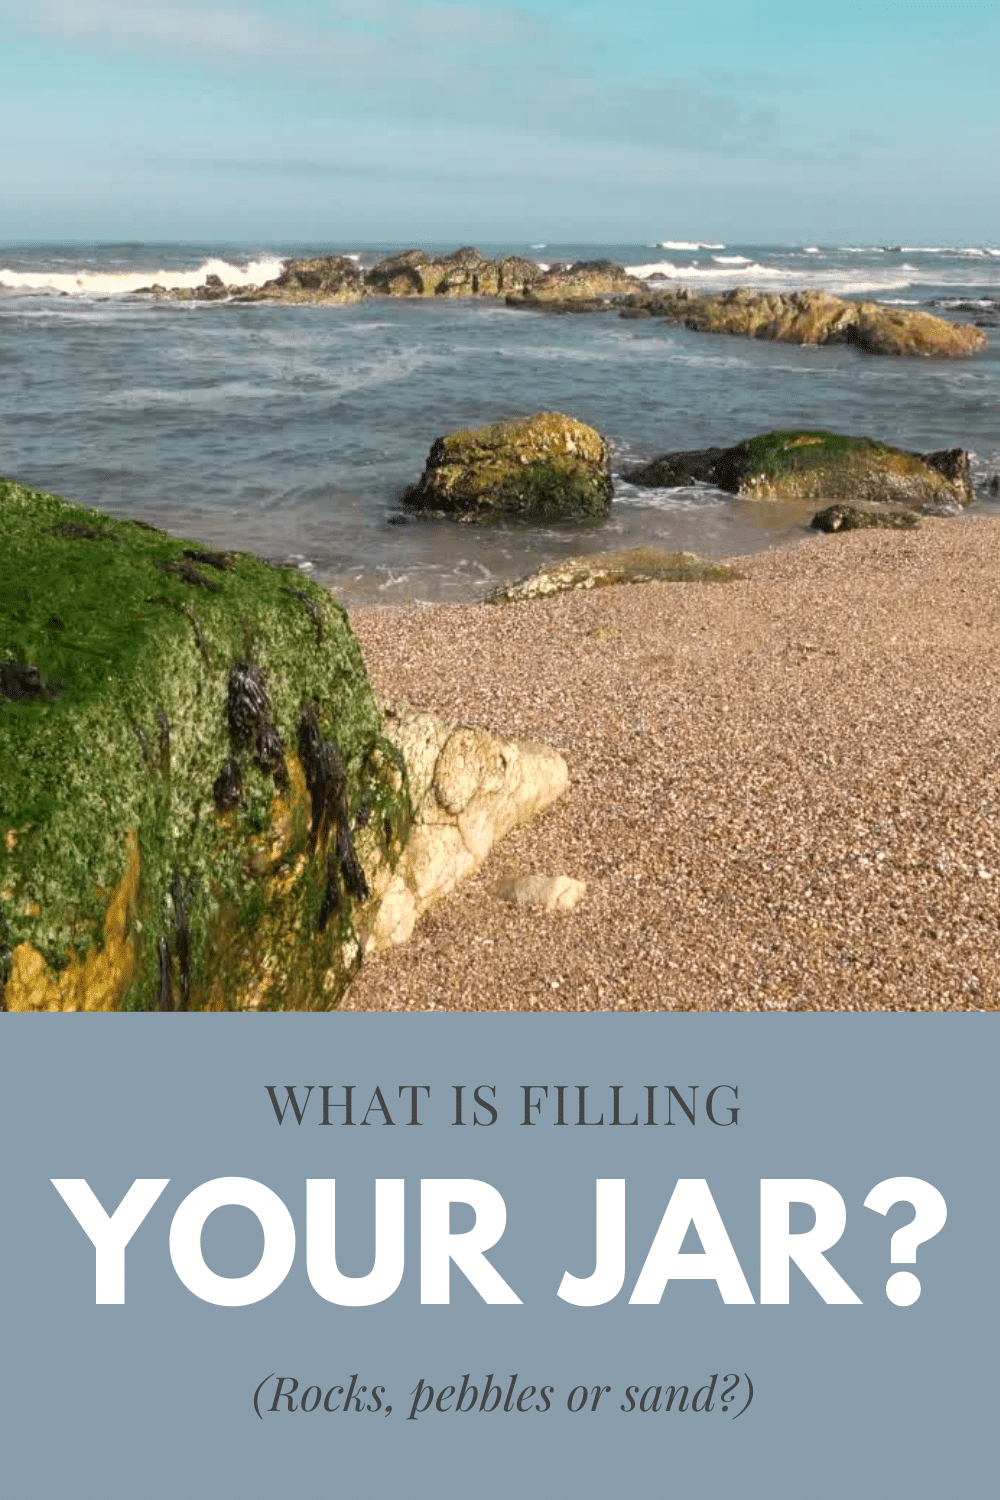 What is filling your jar? Rocks, pebbles, and sand?